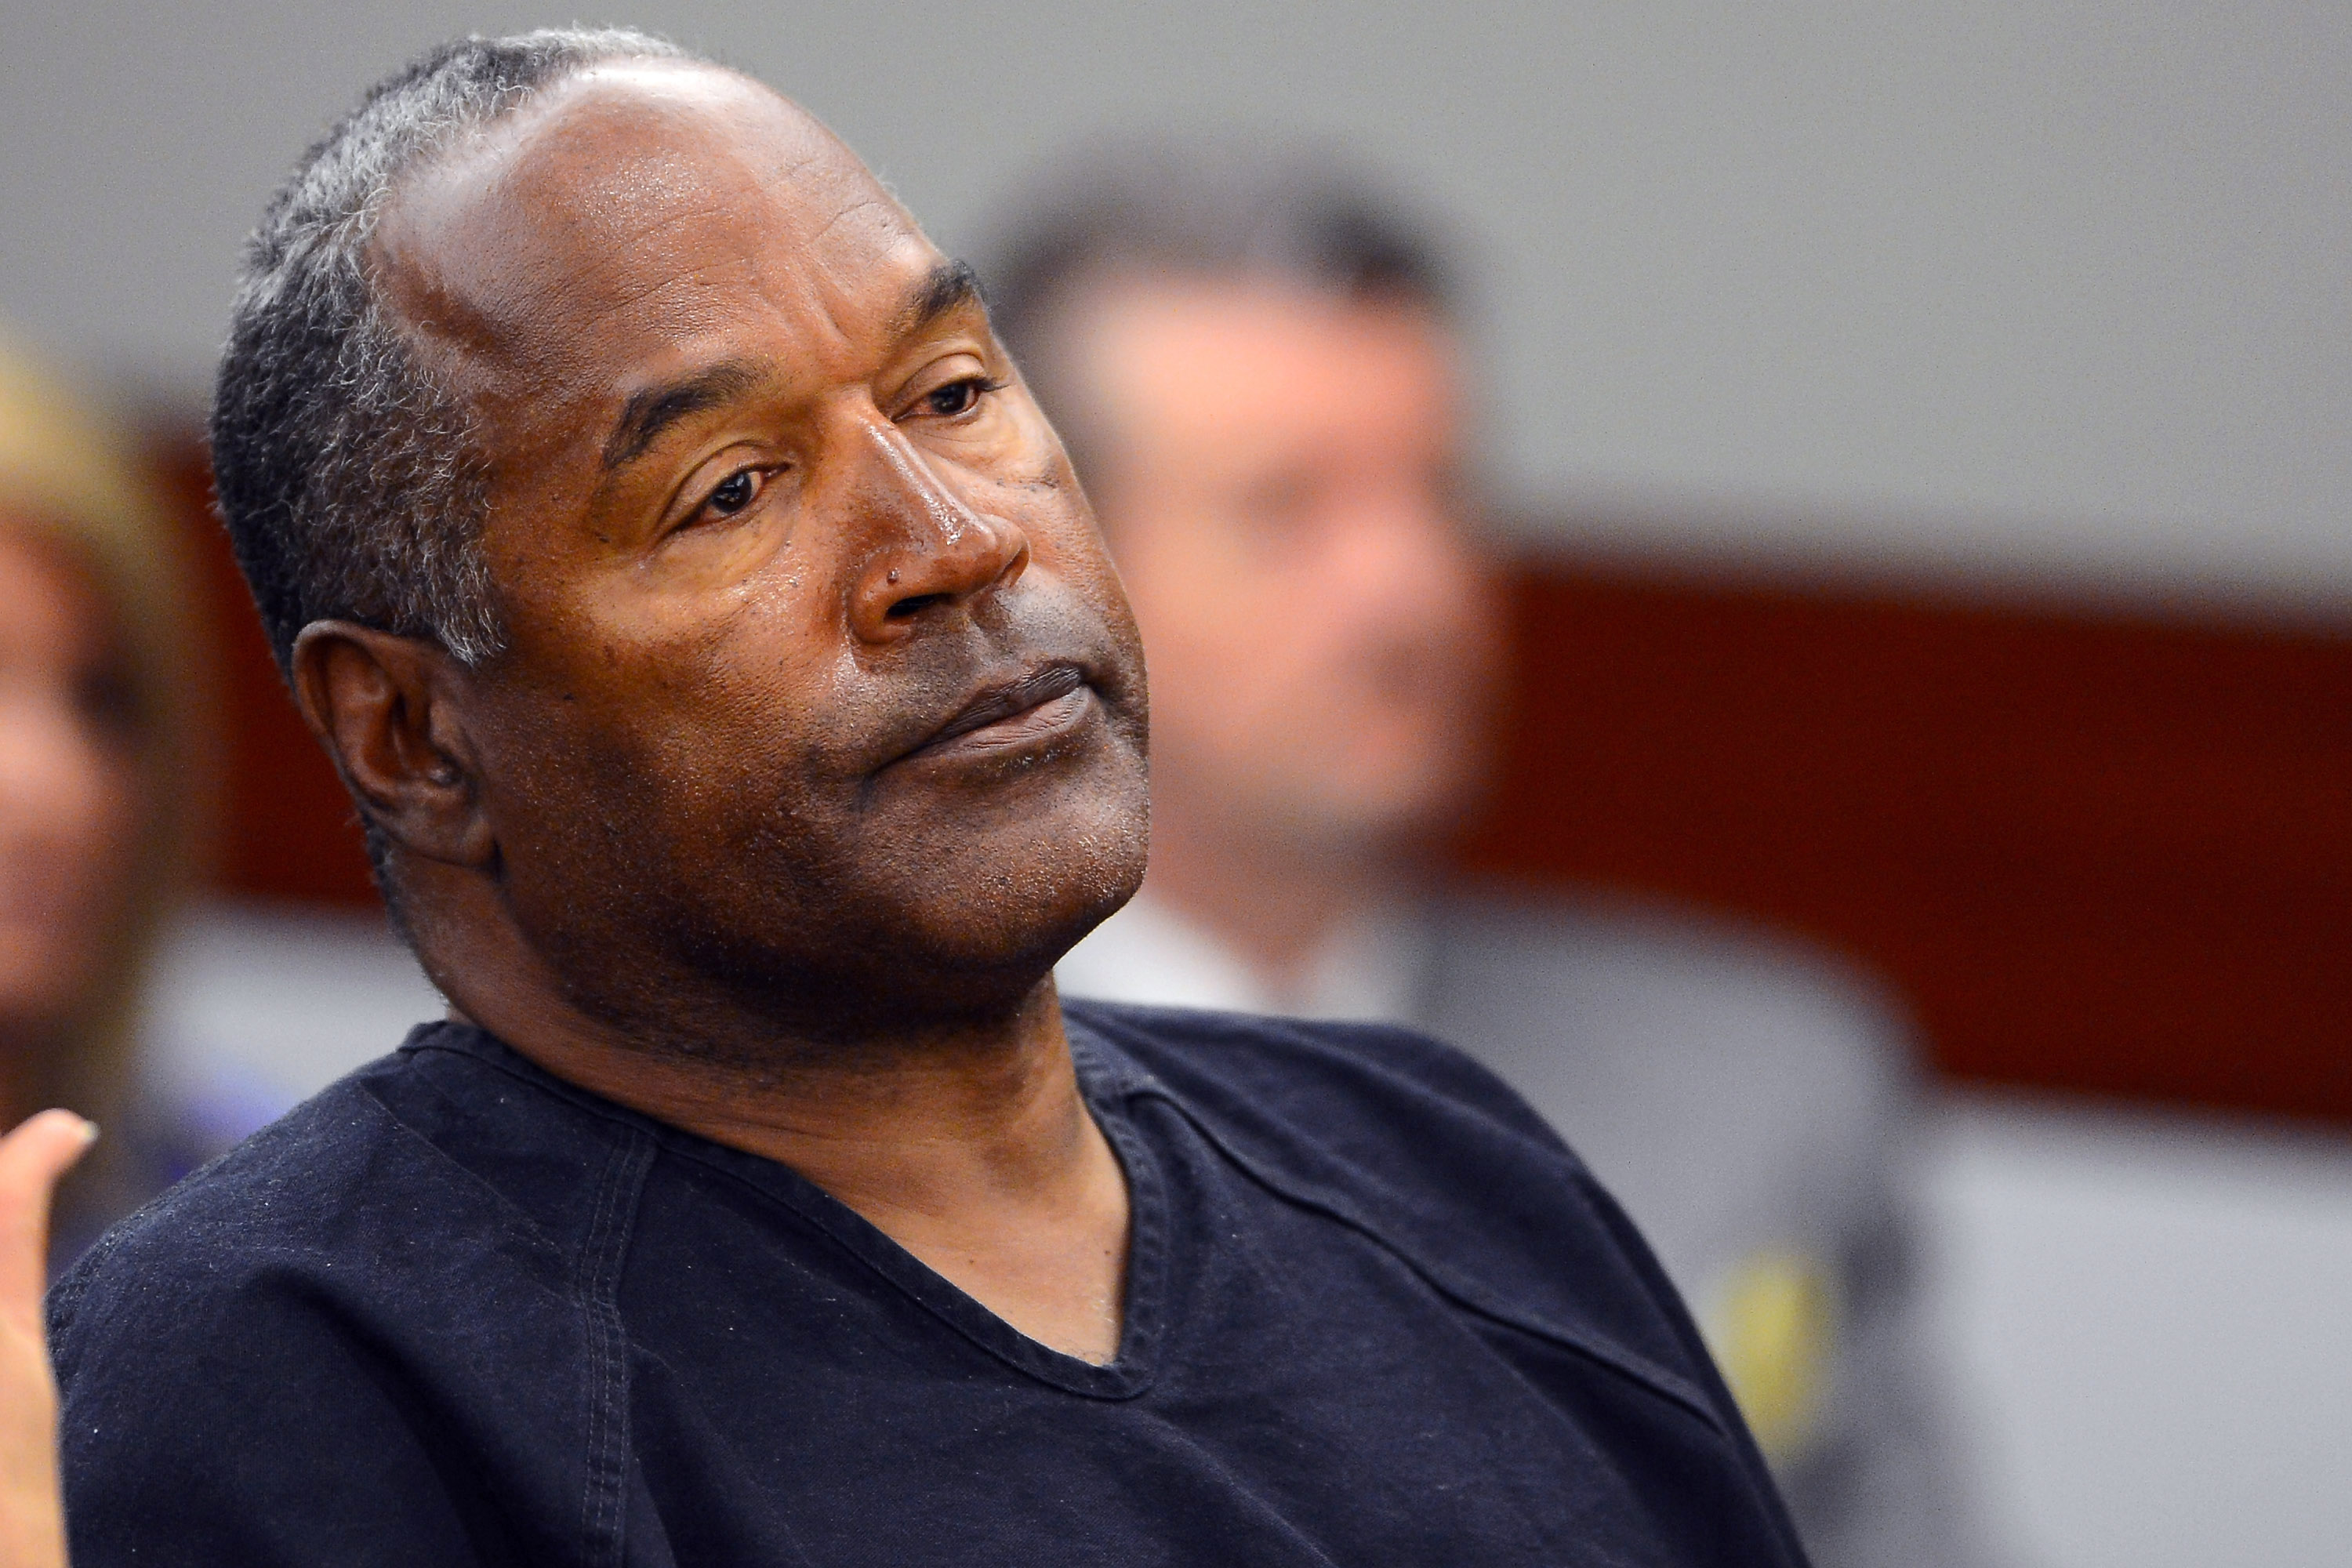 O.J. Simpson Seeks Retrial In Las Vegas Court - Day 5